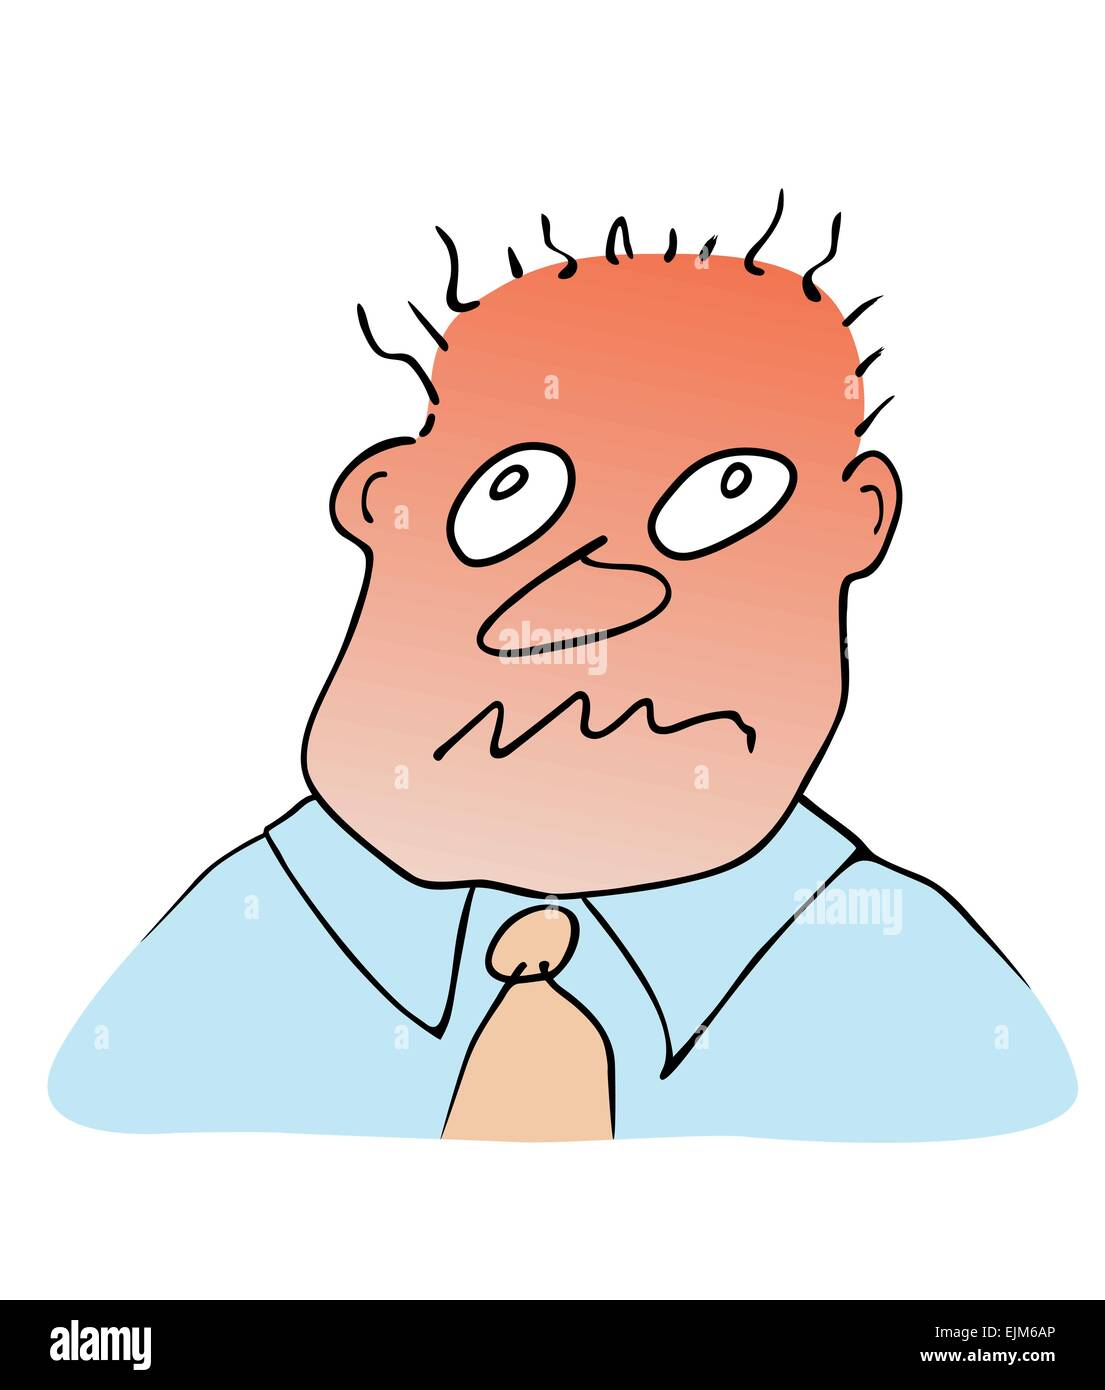 Cartoon image of the face of man - stress reaction Stock Vector